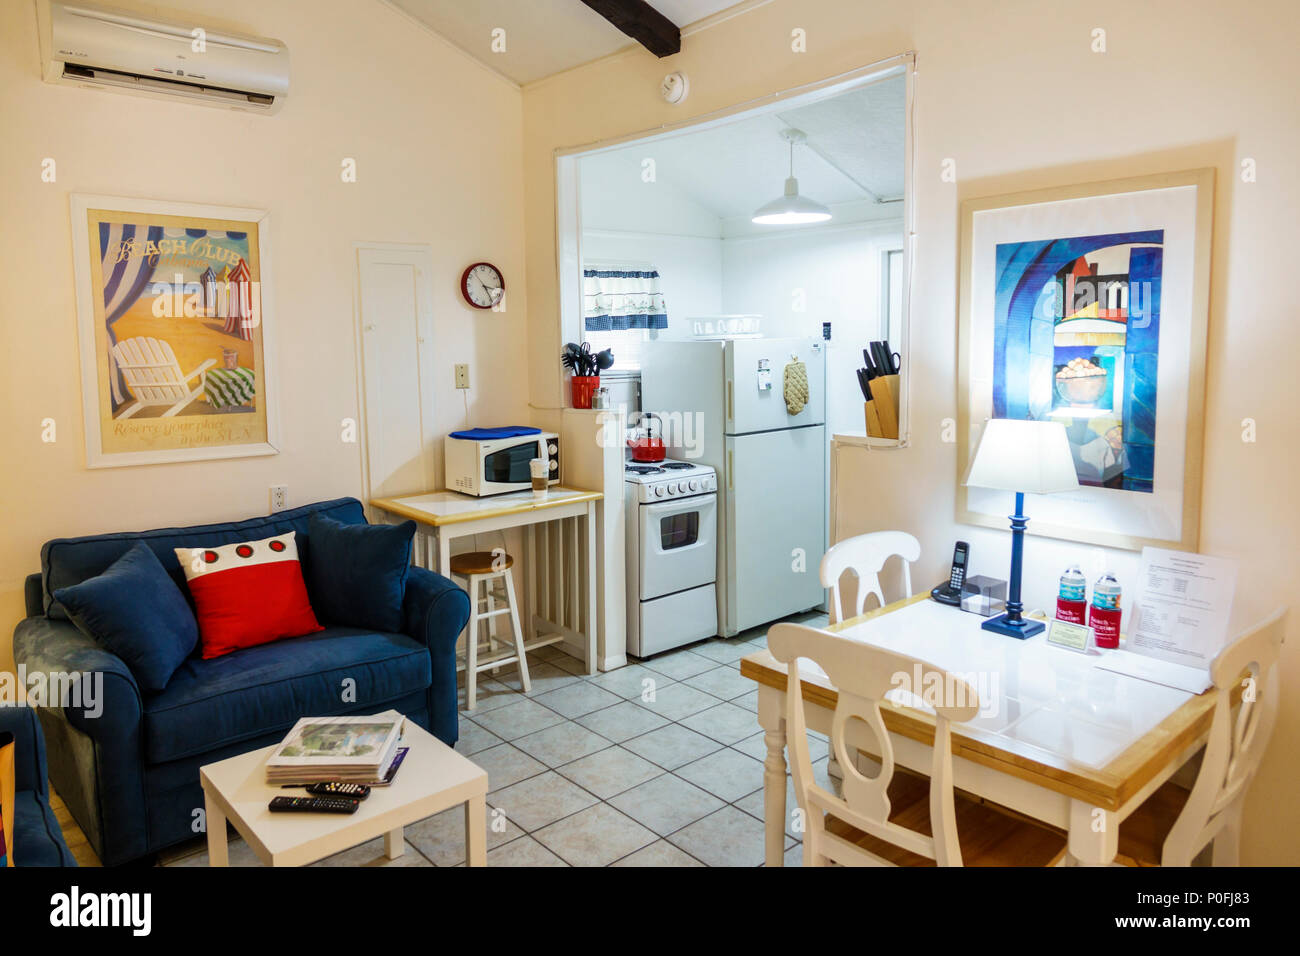 Florida Pompano Beach Cottages dal Beach Motel bungalow interno ...